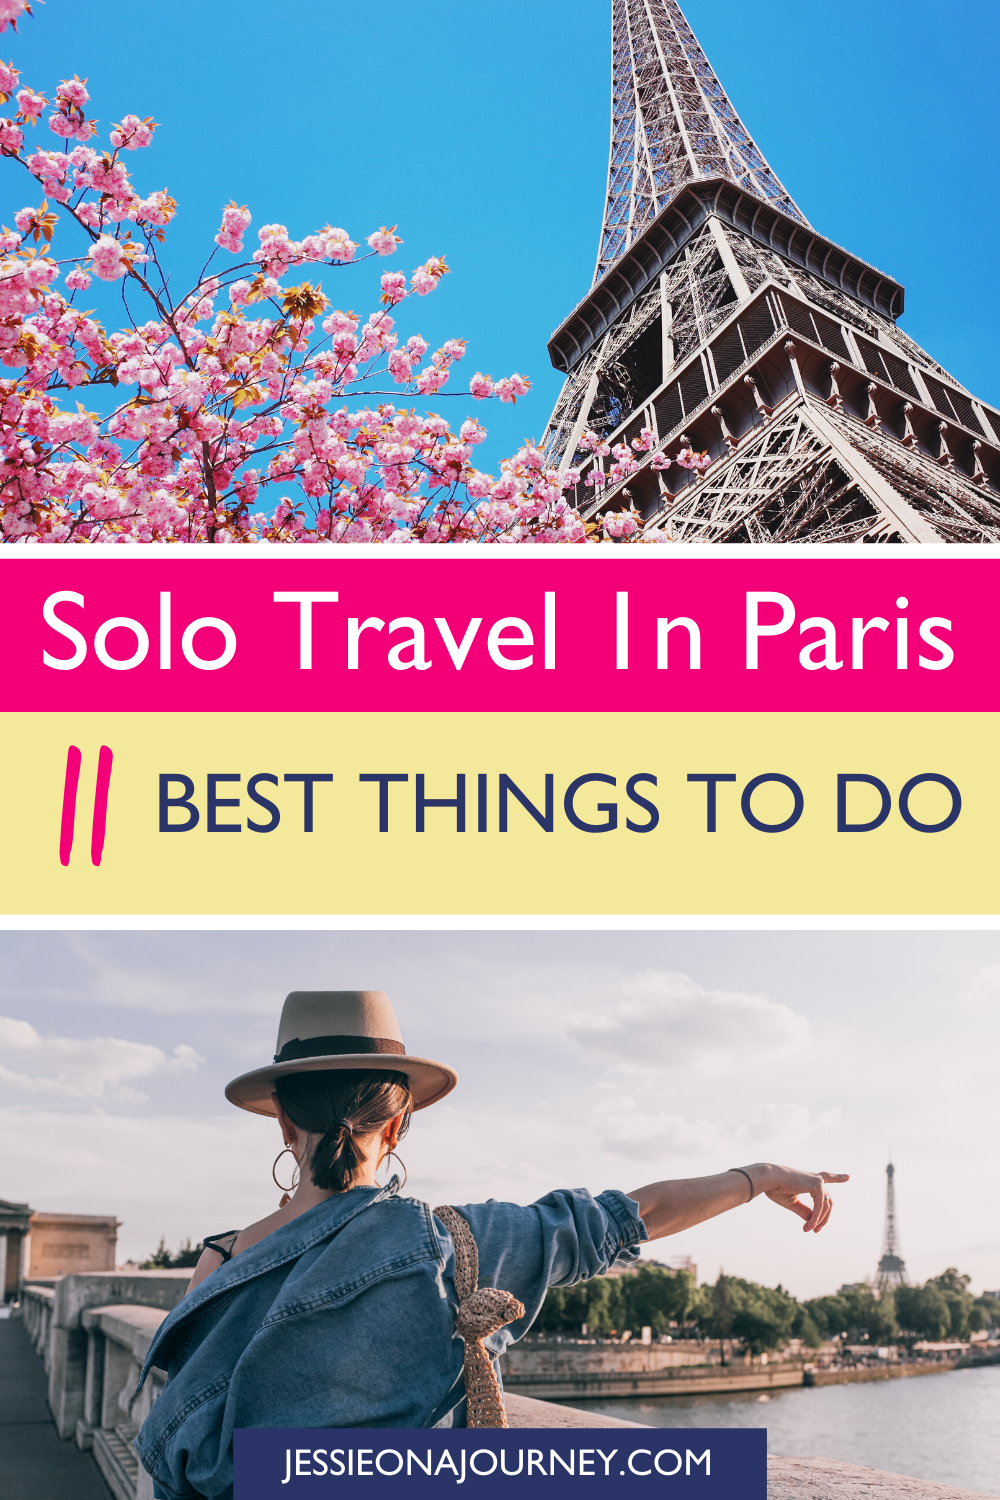 Solo Travel In Paris A Fun Guide For Women Traveling Alone Solo Travel Female Travel Solo Female Travel Safety